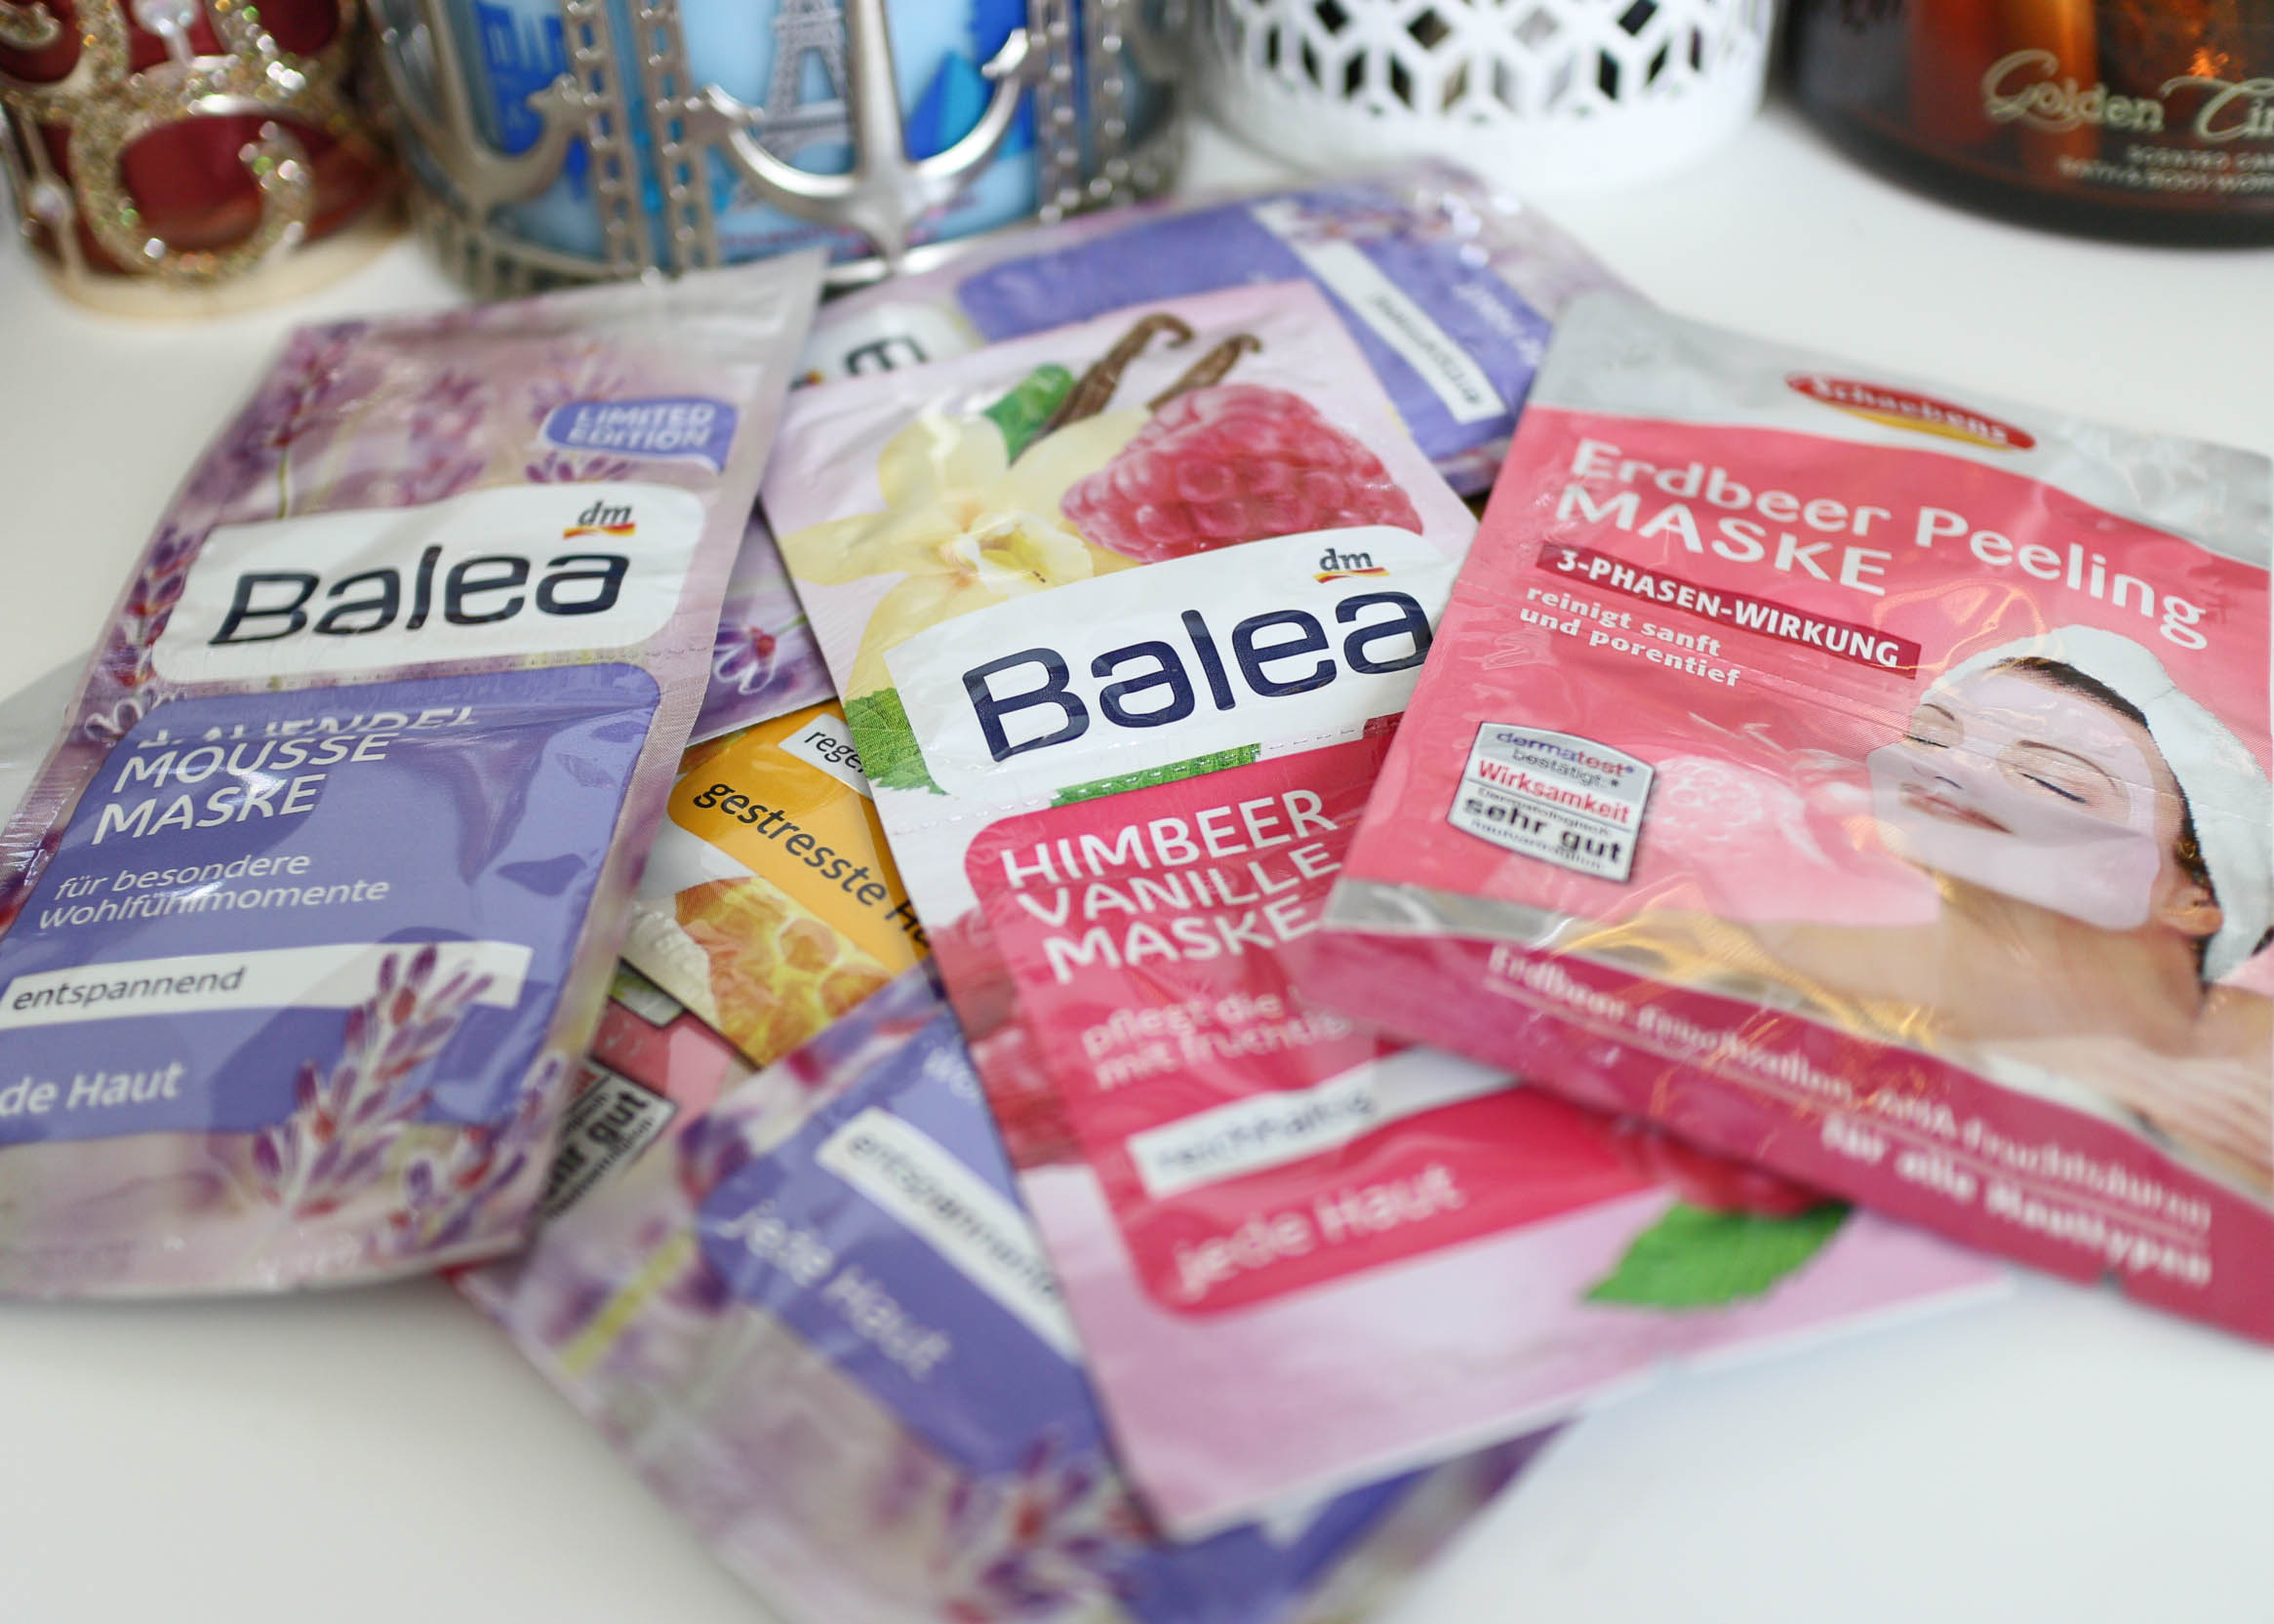 f721a467eba A haul from DM, the German drugstore, would not be complete without some  face masks! Ranging from €0.45-0.55, I picked up more than a few Schaebens  and ...